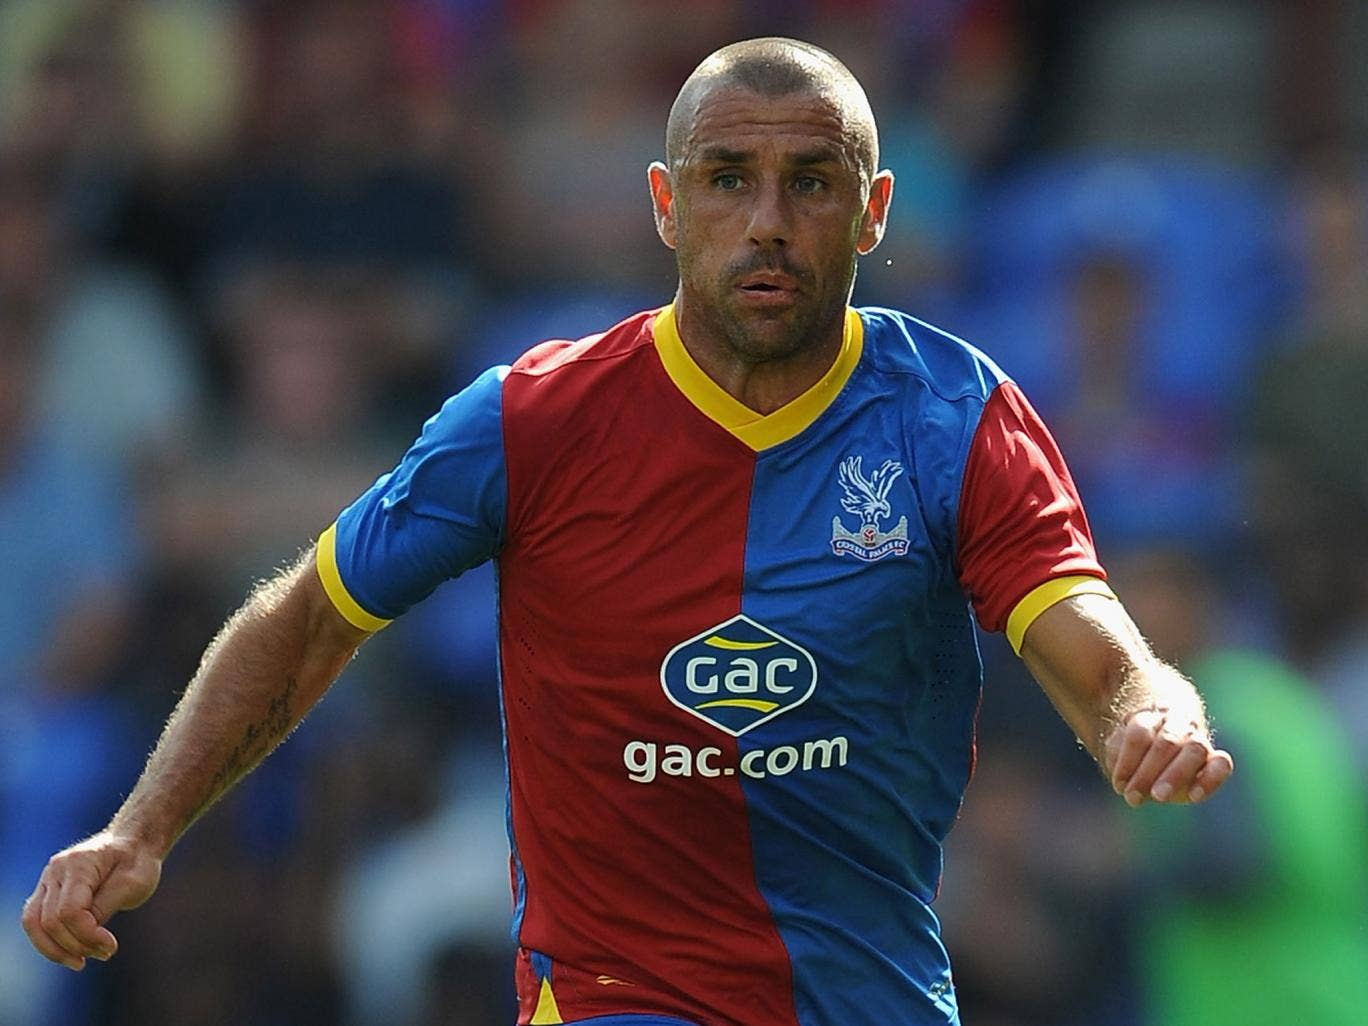 Kevin Phillips, 40, is set to feature for Crystal Palace this season